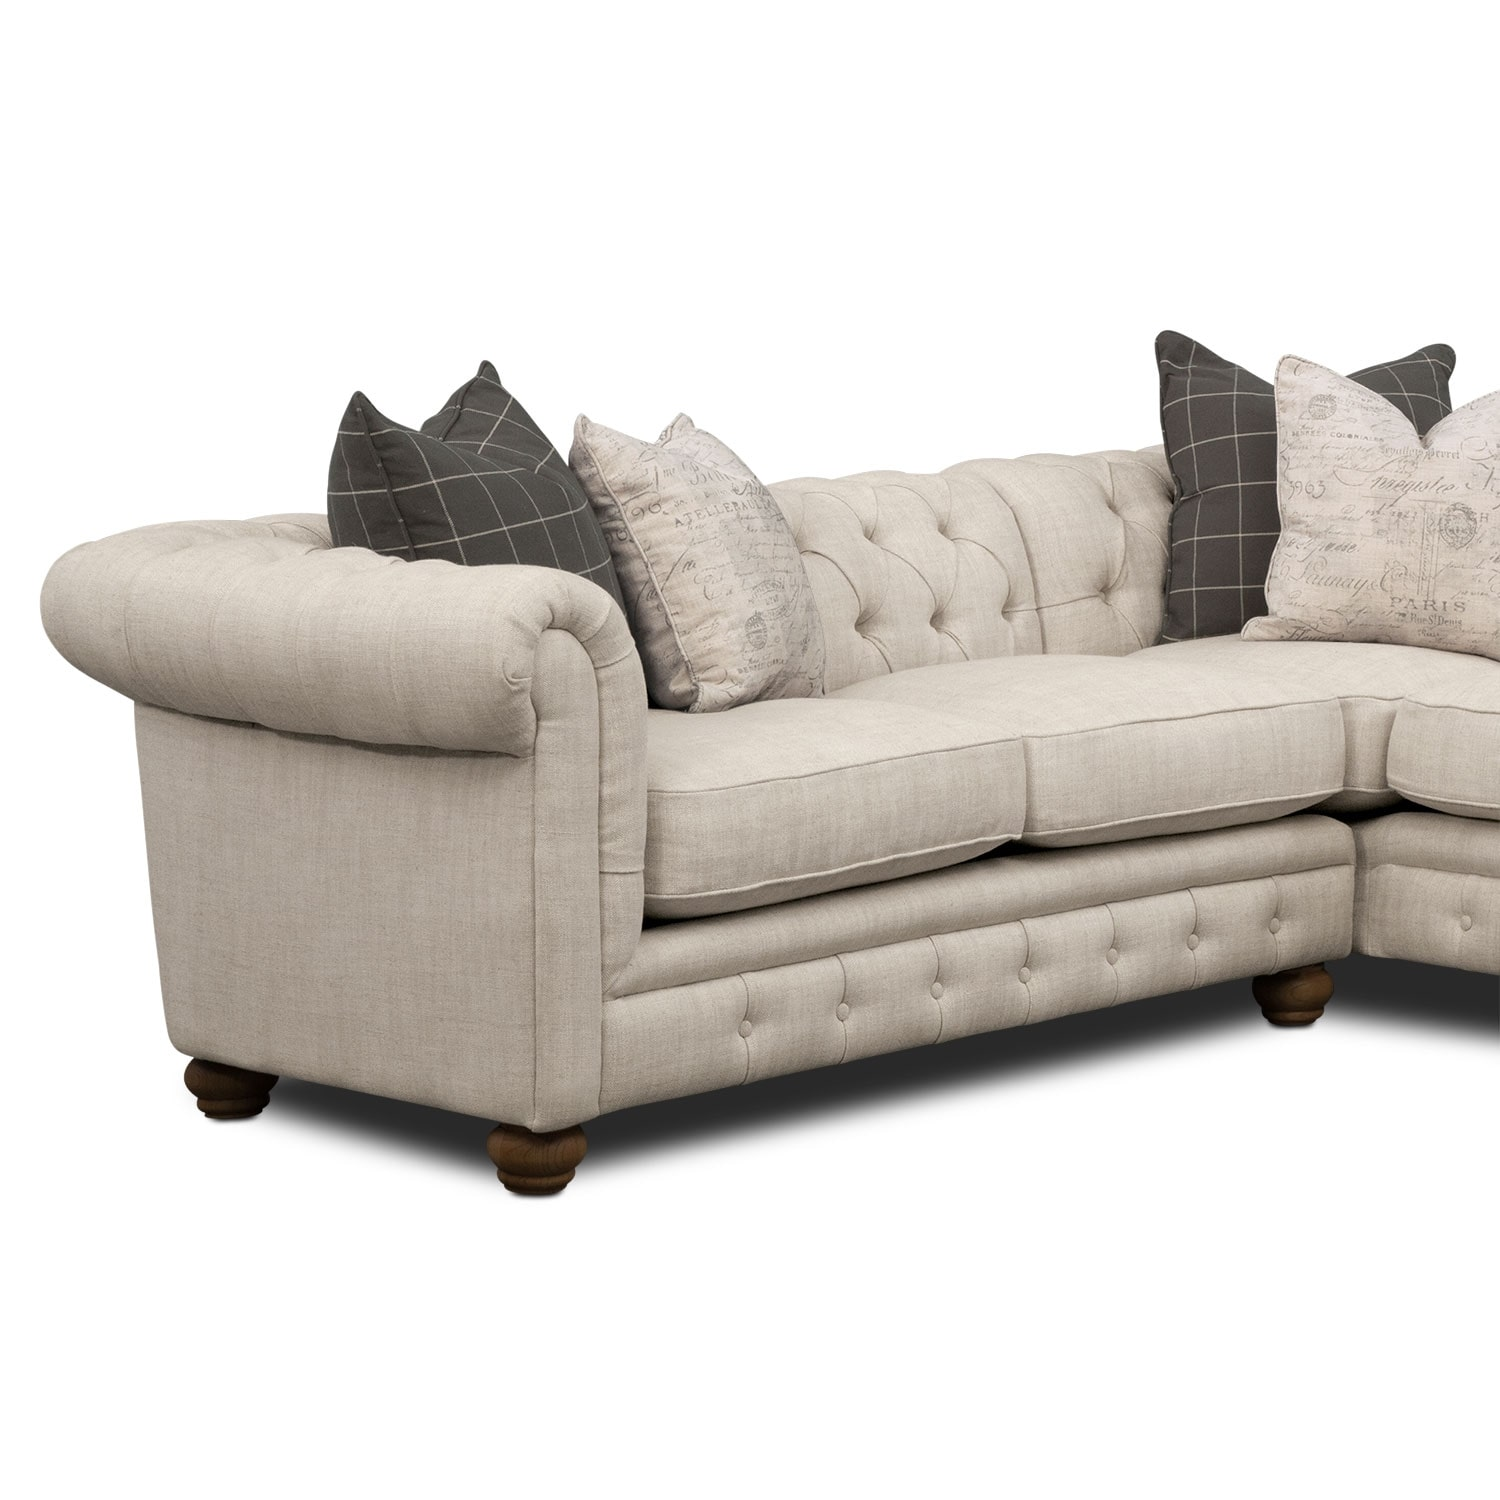 where to donate sectional sofa fuzzy slipcover madeline 2 piece beige value city furniture